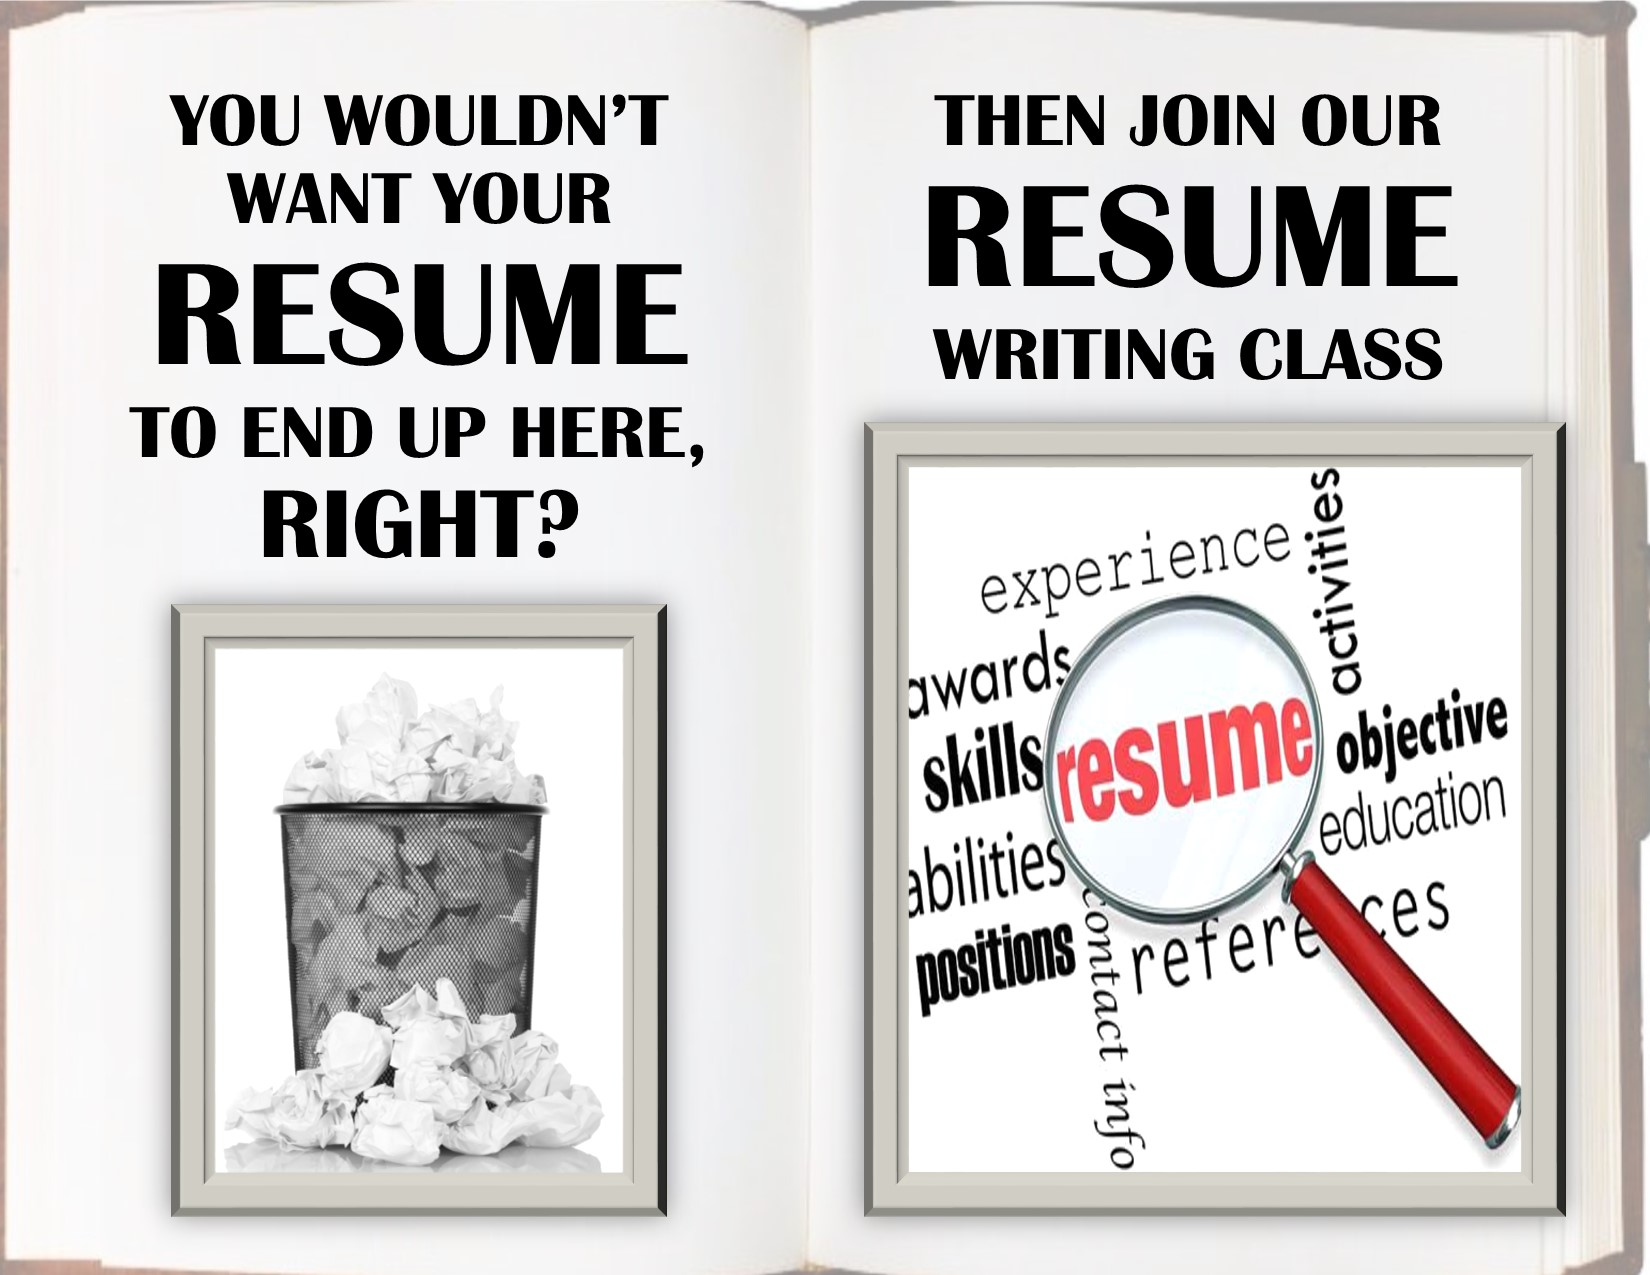 Resume Help     These Classes Help In Writing Your Resume, Including  Learning Basic Computer Skills To Apply For Online Jobs.  Resume Writing Classes